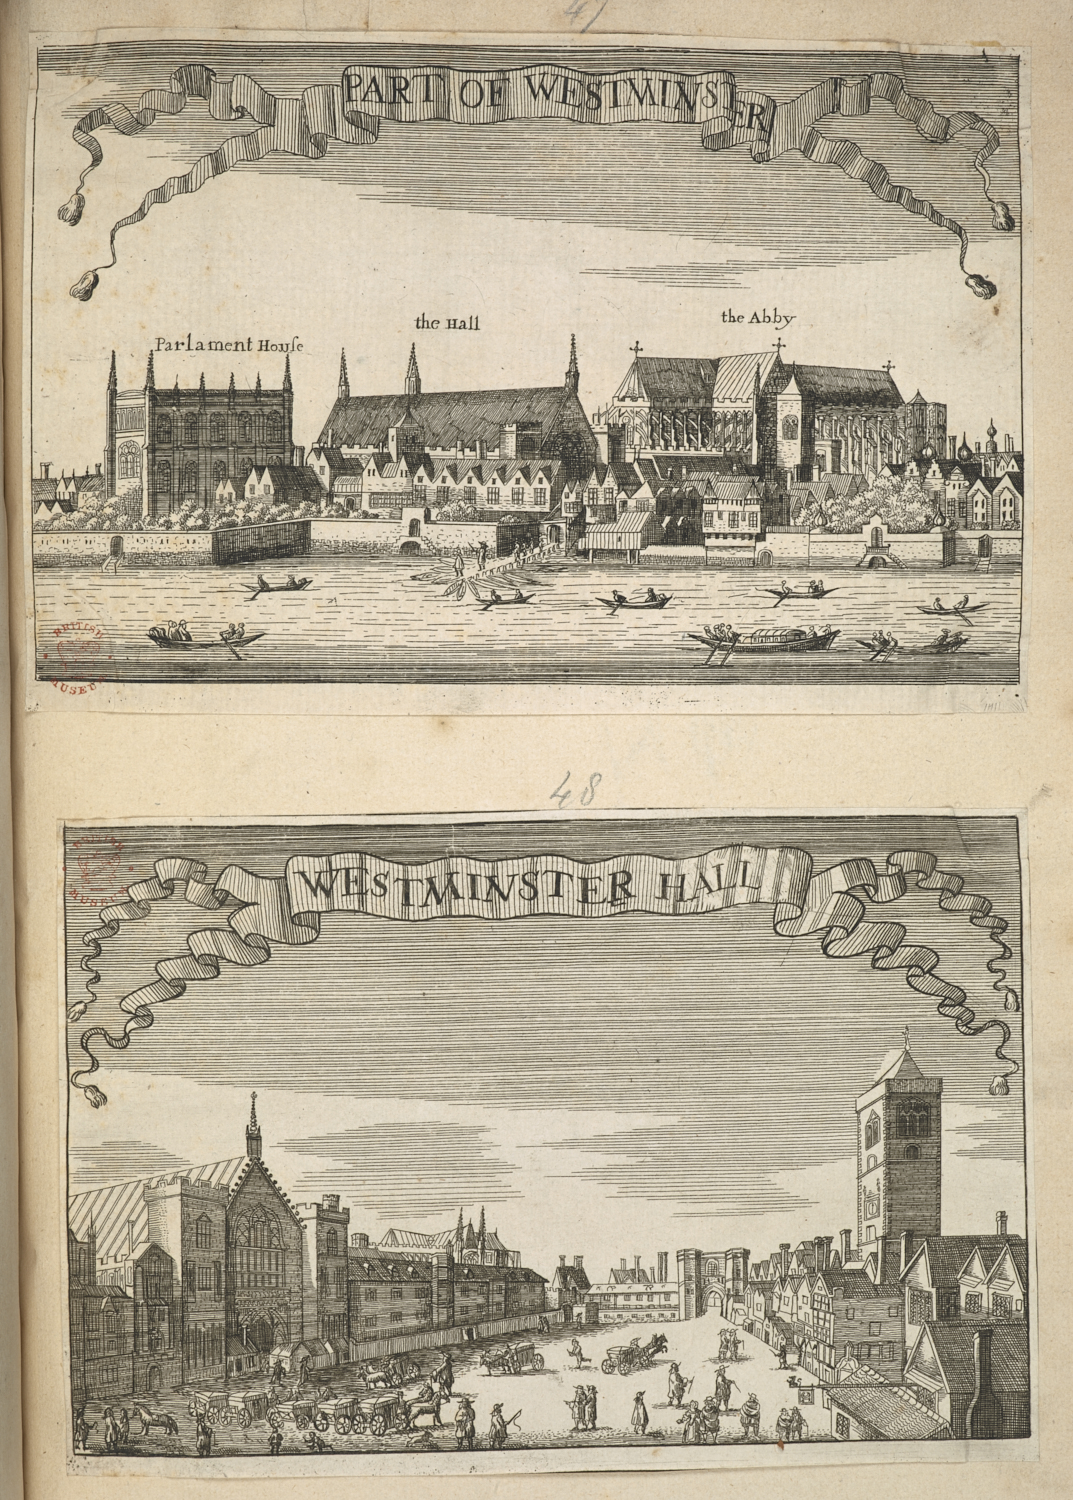 John Dunstall (active 1653-1693), after Wenceslaus Hollar (1507-1577), Part of Westminster and Westminster, about 1690, two etchings, Harley MS 5956, nos. 47-48.